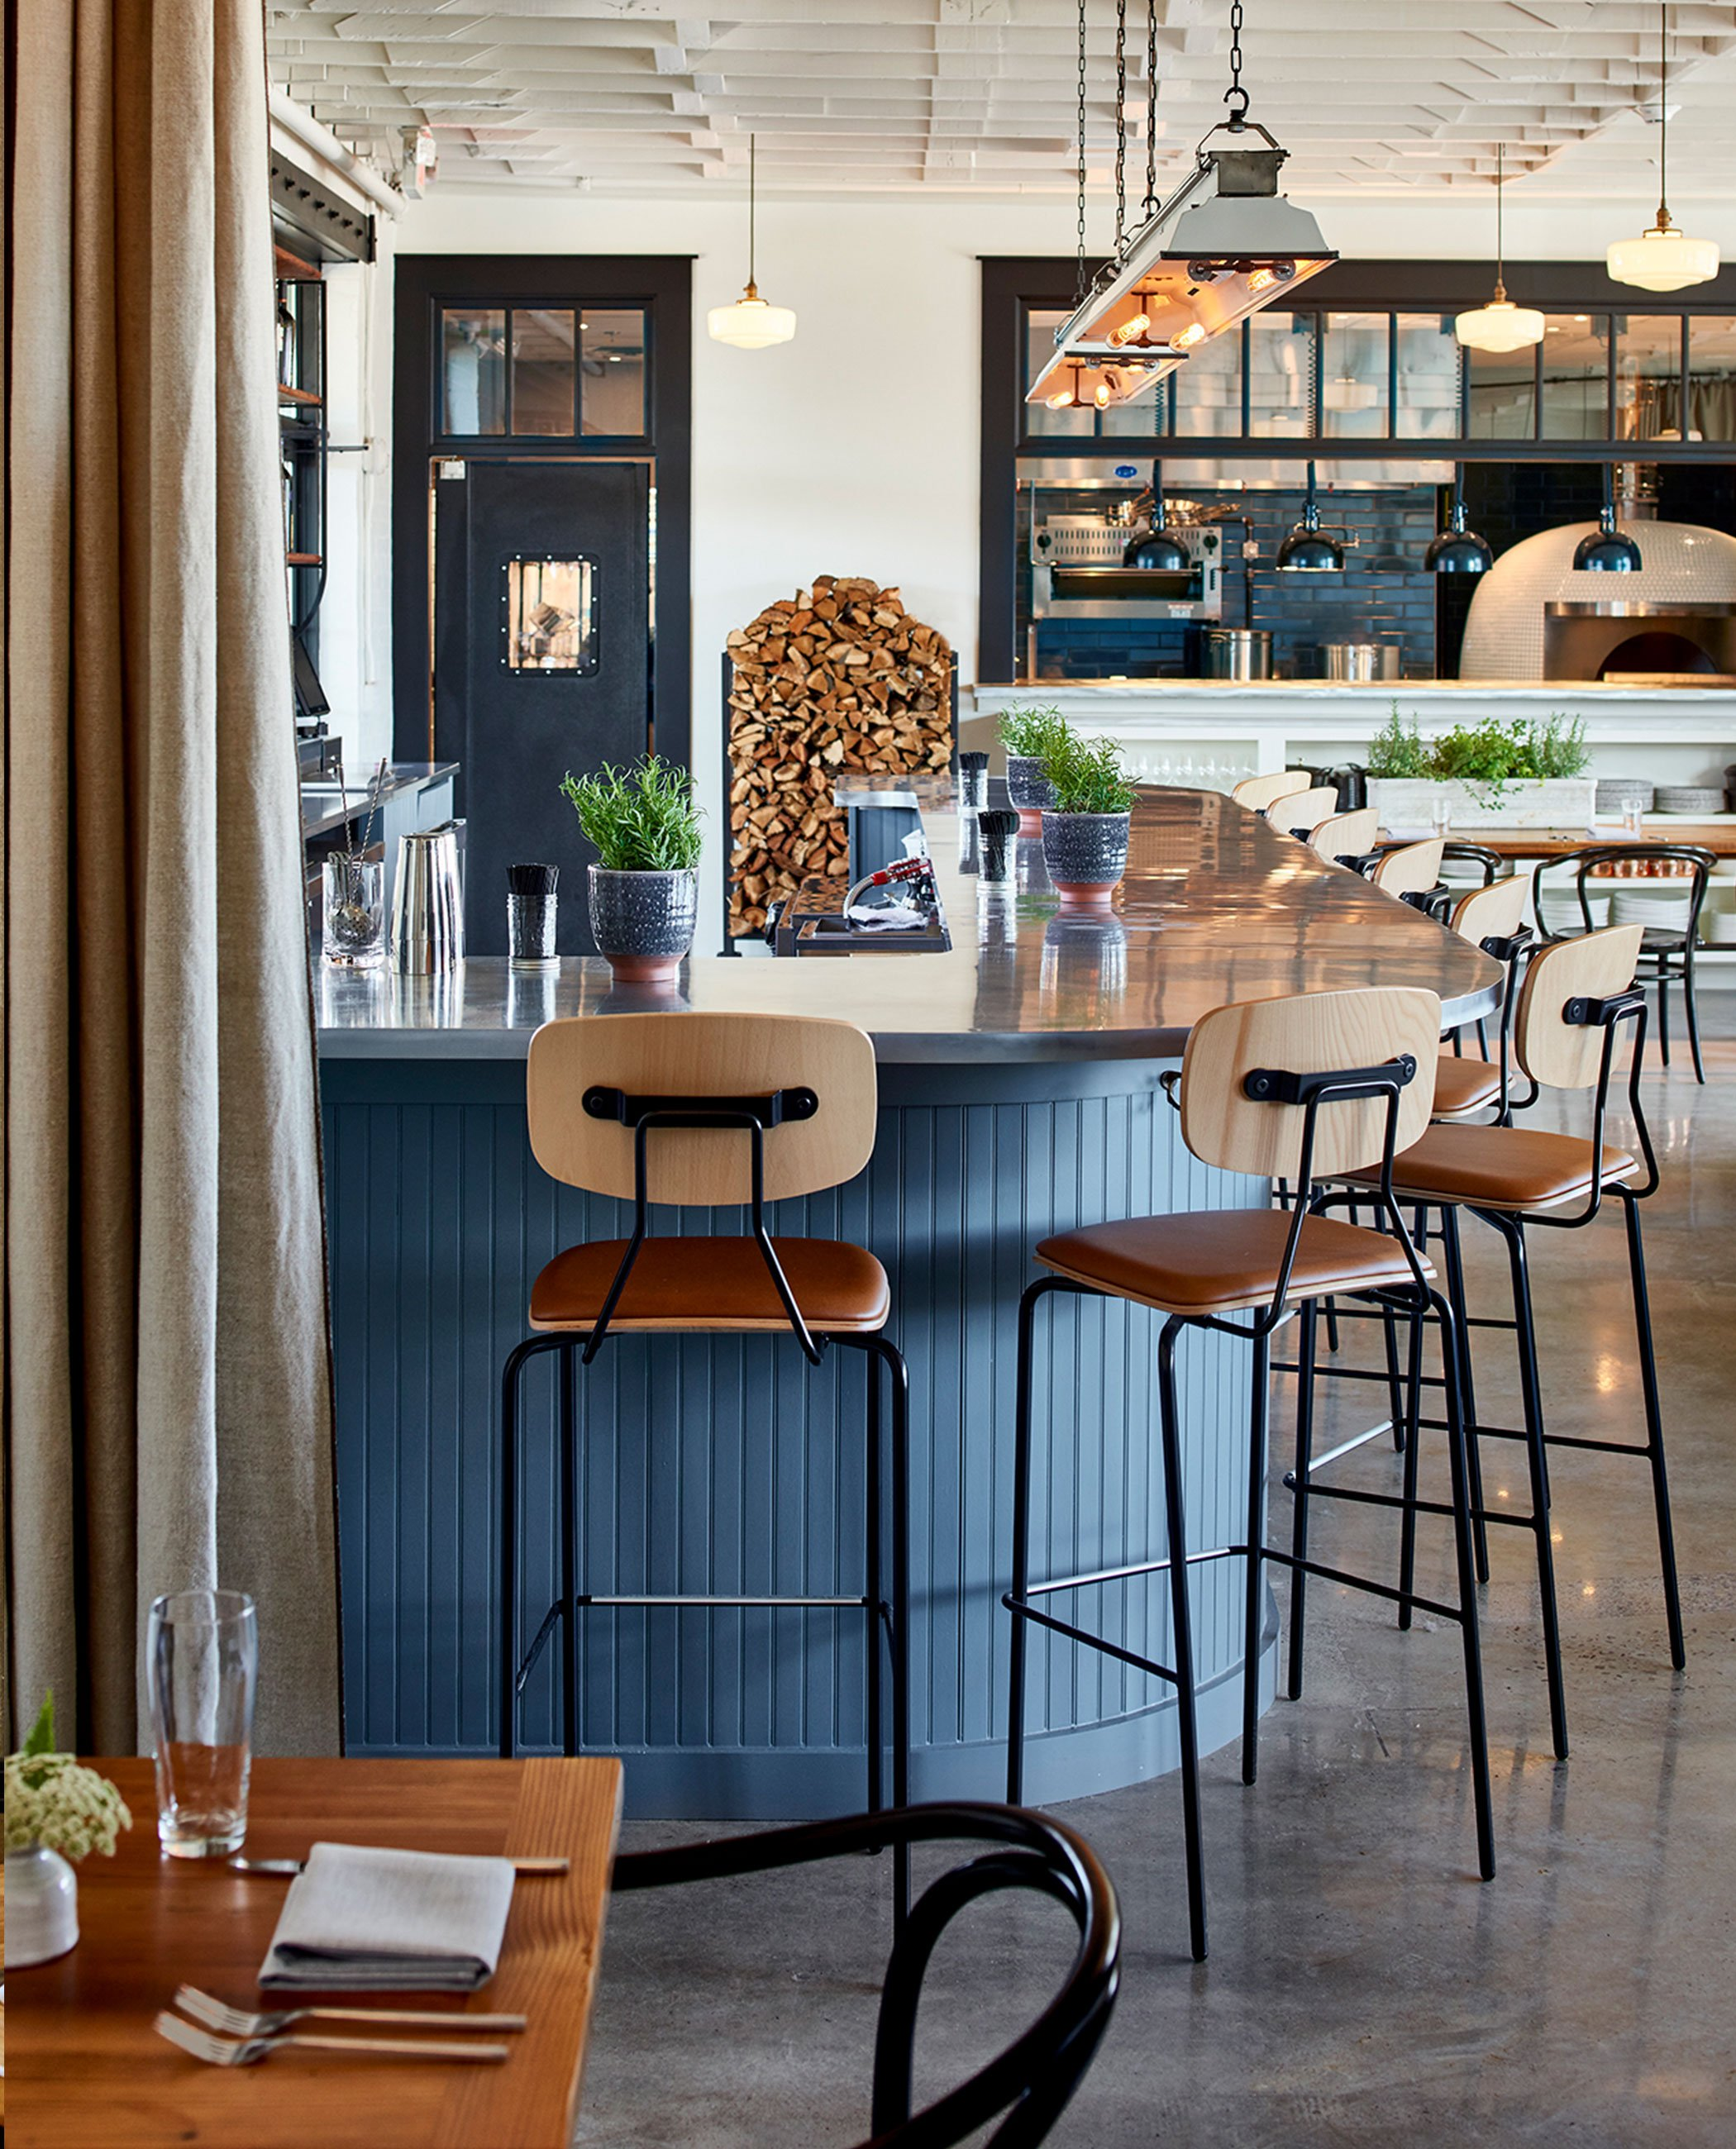 Aventine-charming-restaurant-farm-to-table-design